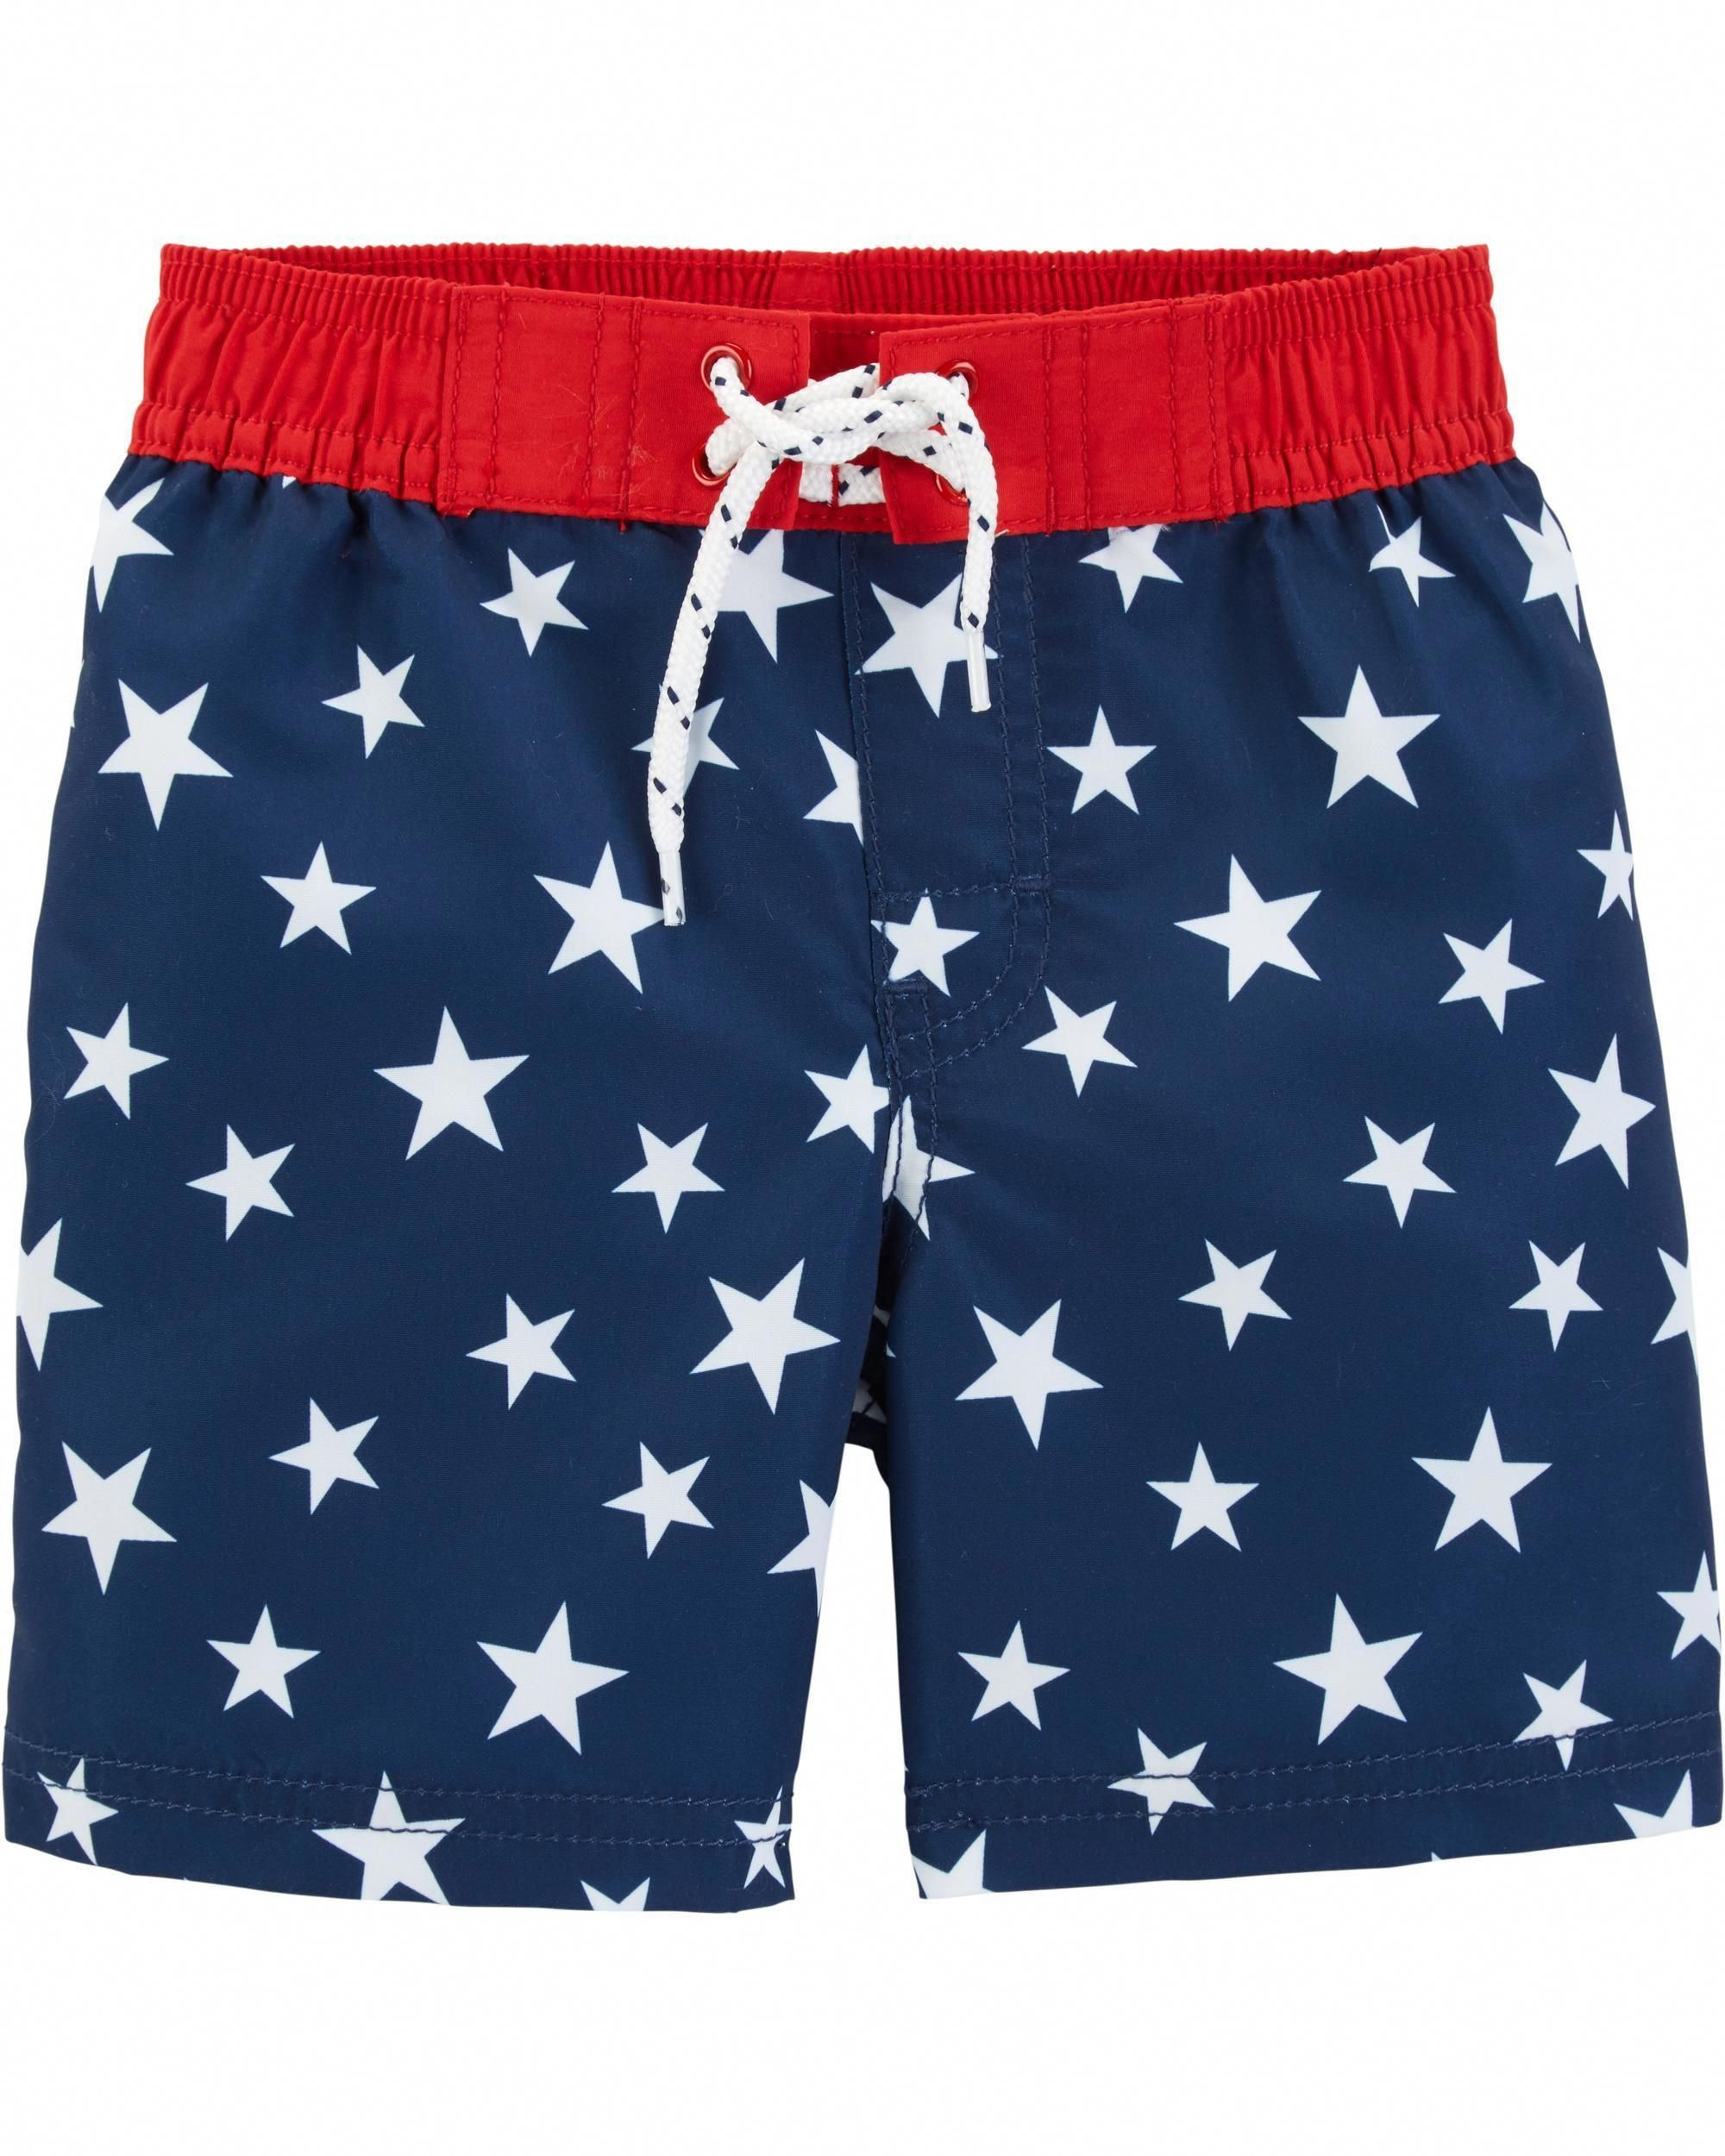 Osh Kosh Bgosh Boys Navy Blue Hawaiian Print Swim Trunk